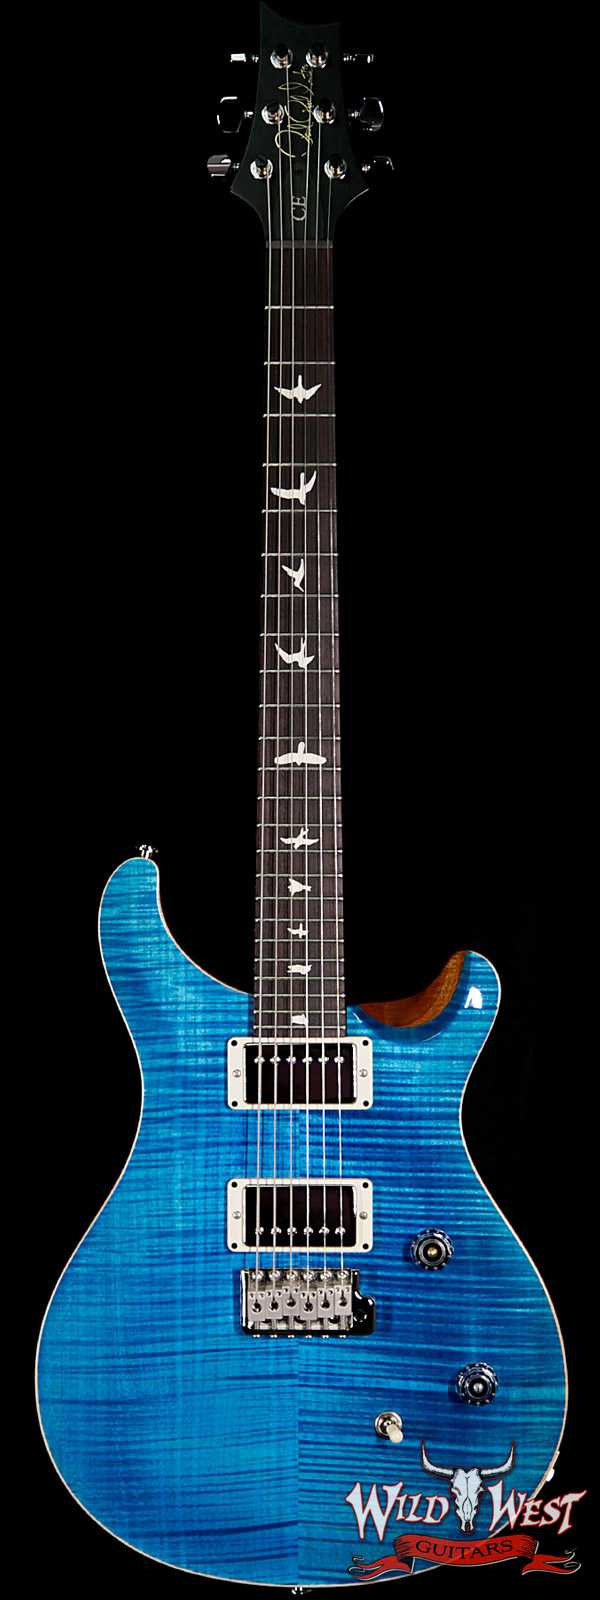 PRS Wild West Guitars Special Run CE 24 Flame Top Painted Neck 57/08 Pickups Blue Matteo